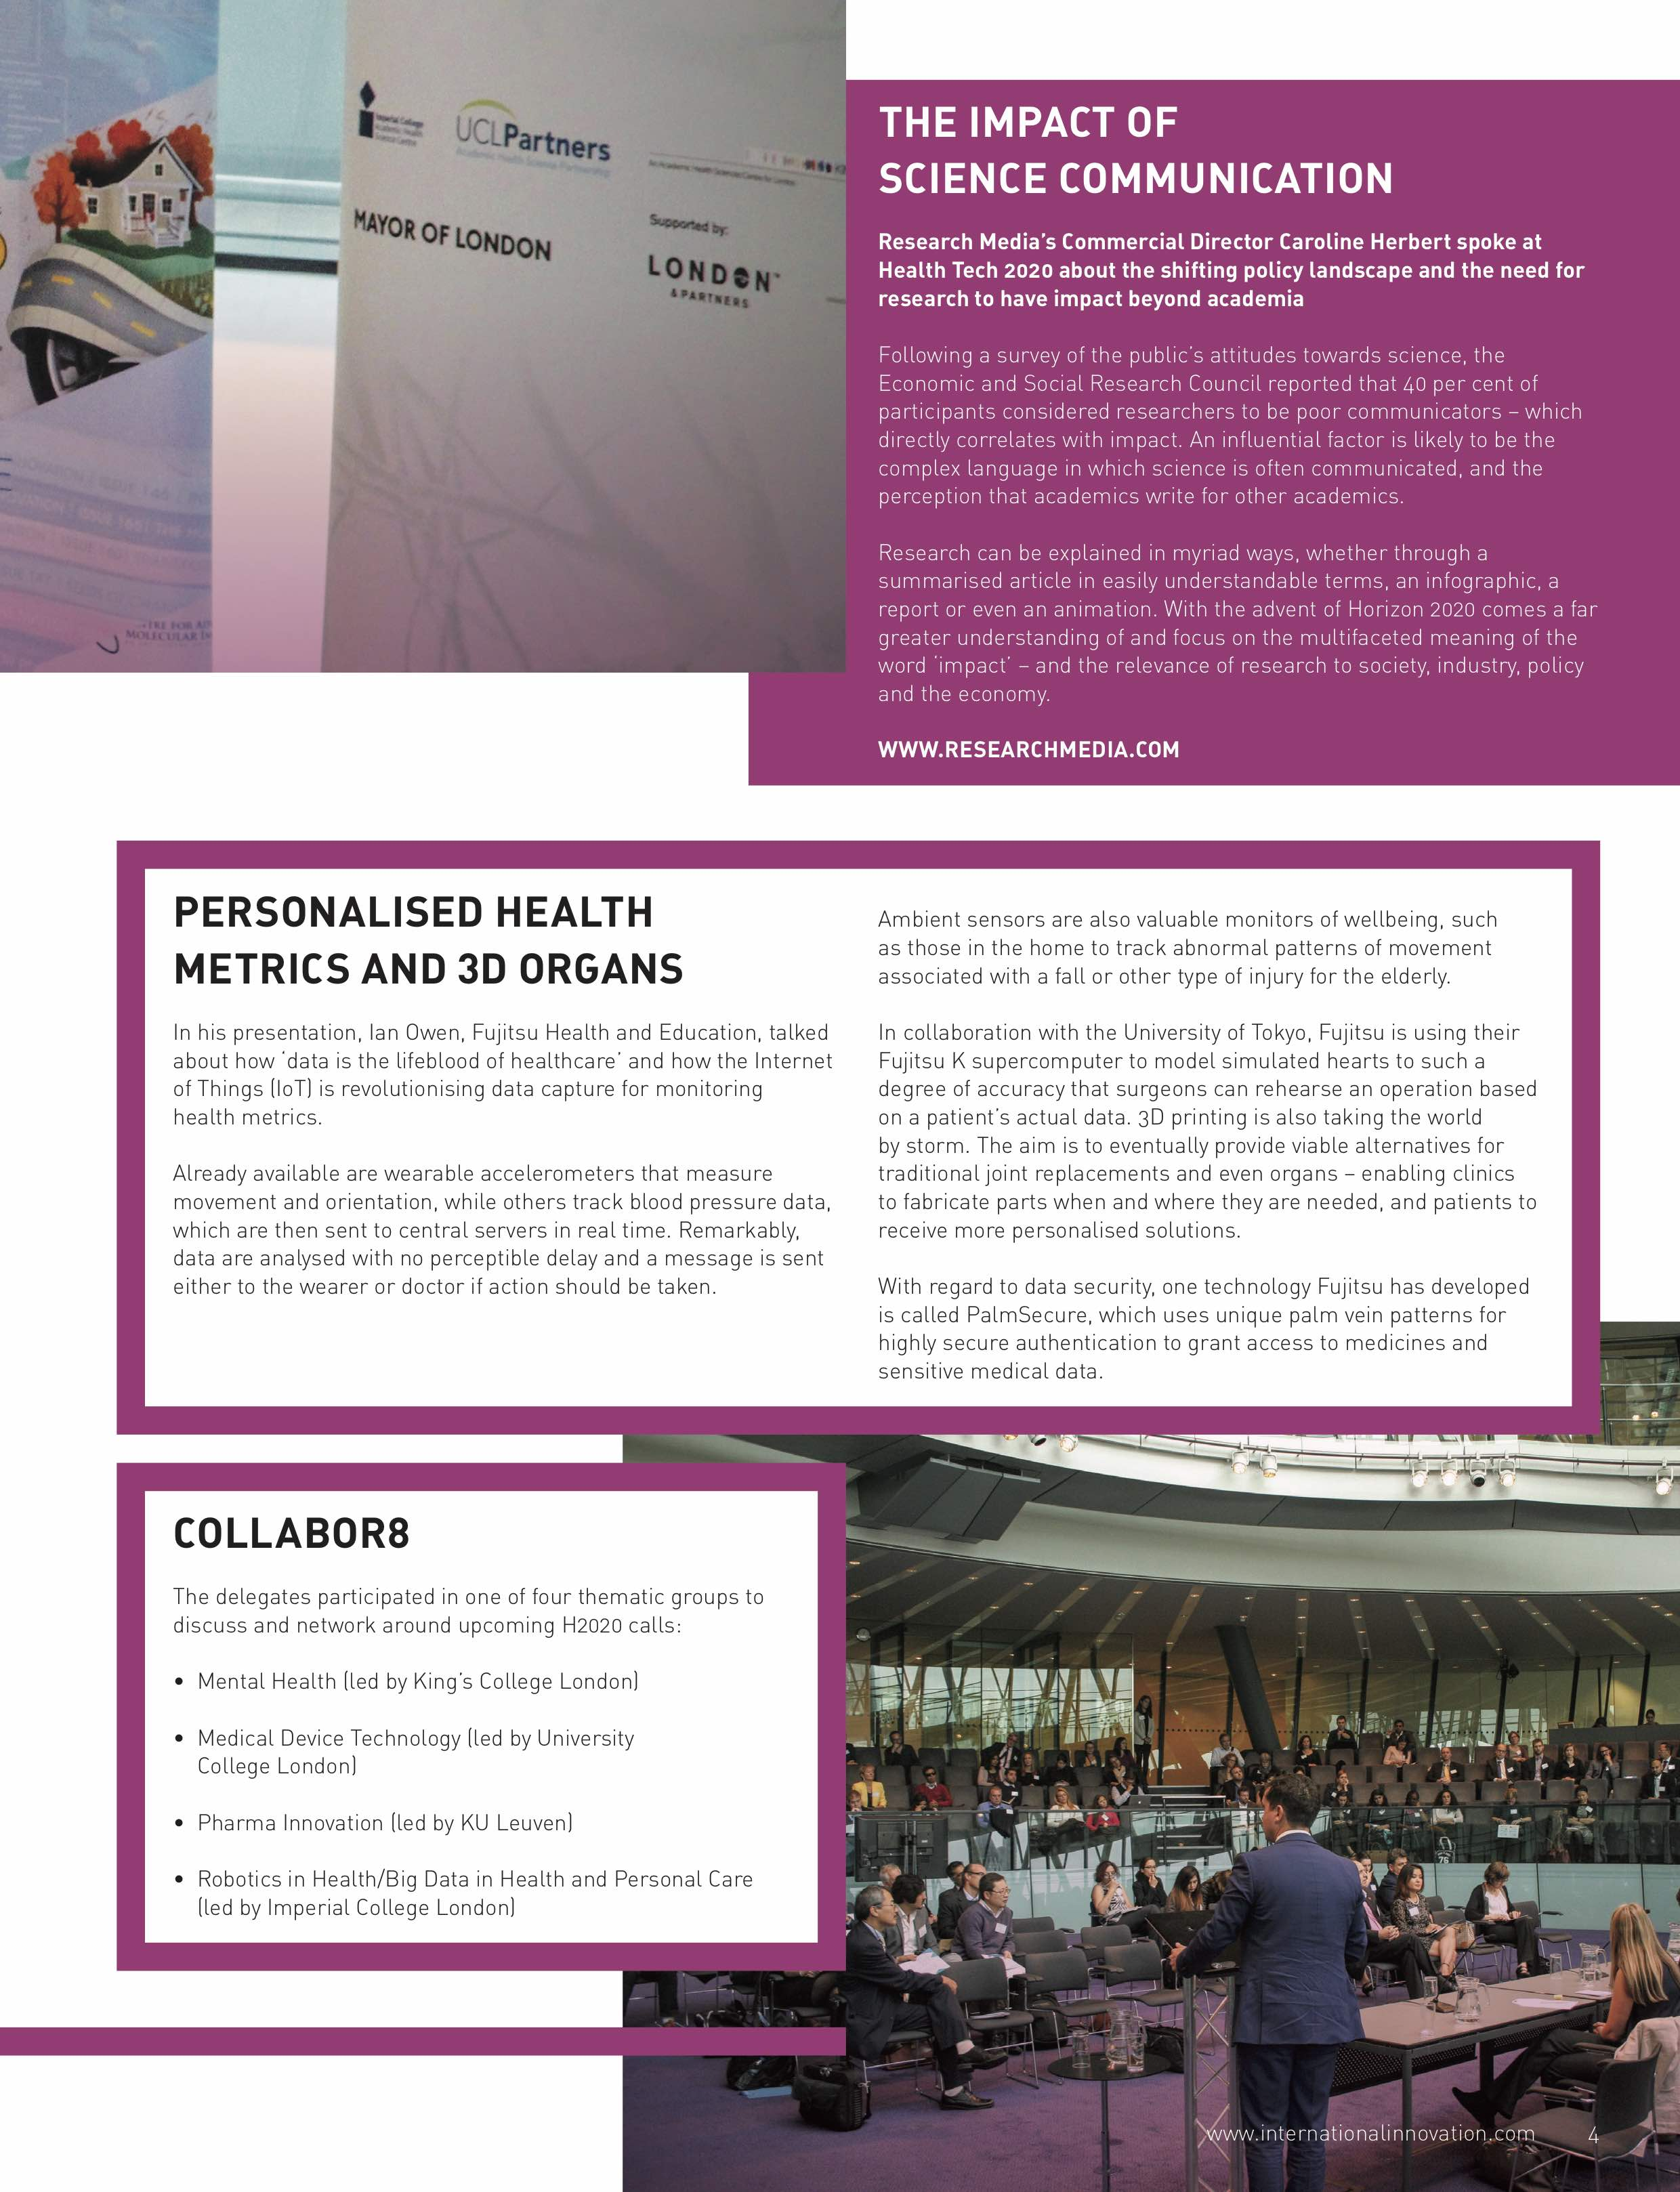 Health_Tech_2020_Intl_Innovation_Research_Impacts_Q3_2_Research_Media_HR3.jpg